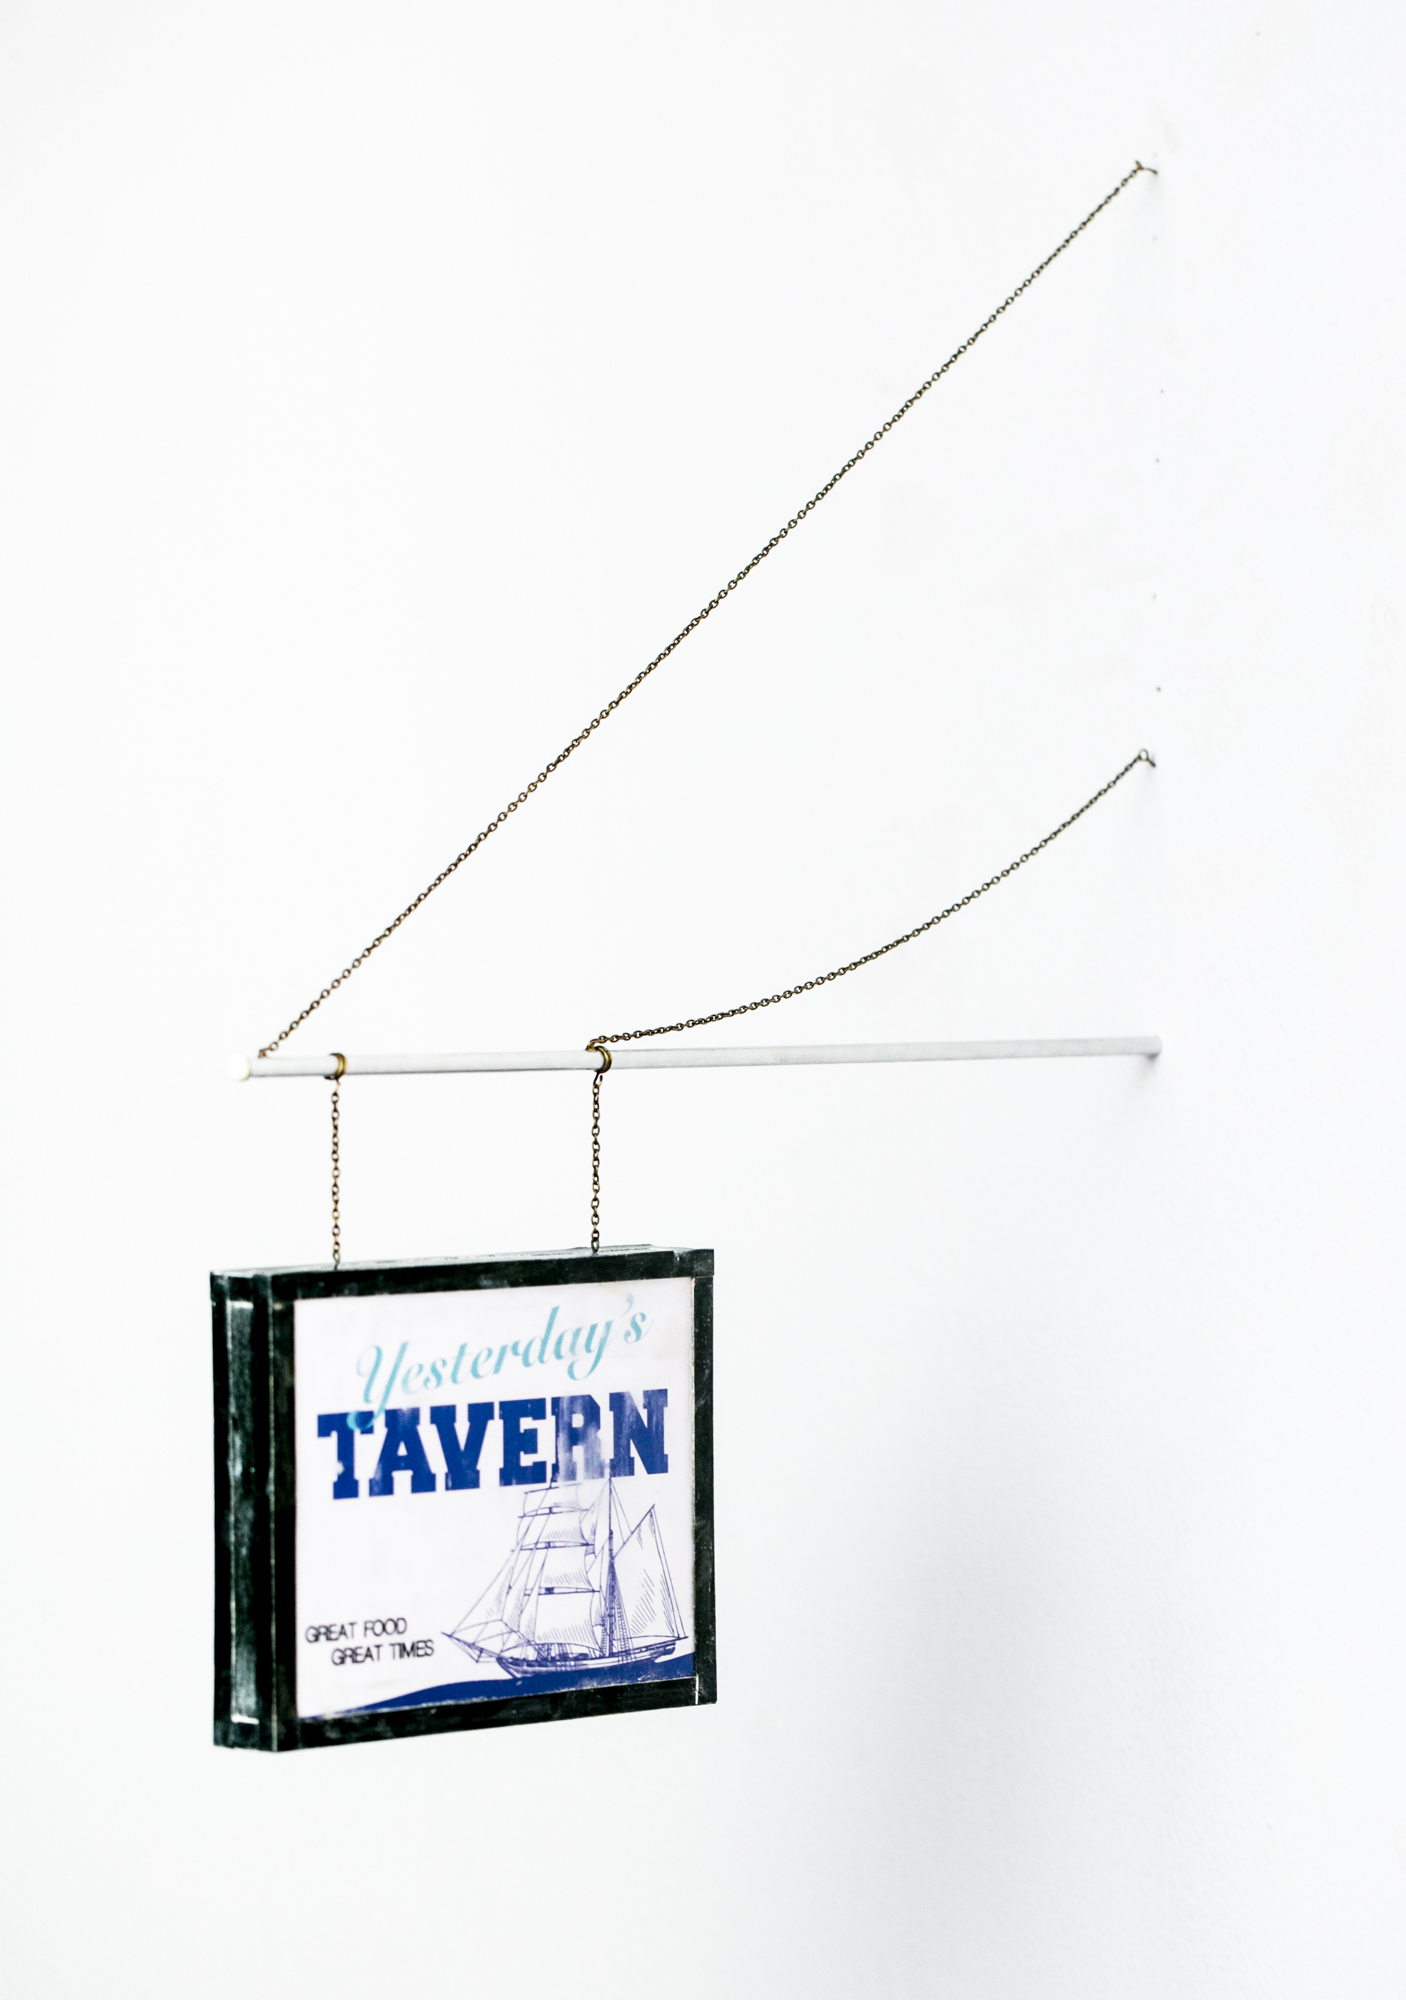 Yesterday's Tavern Sign - SOLD